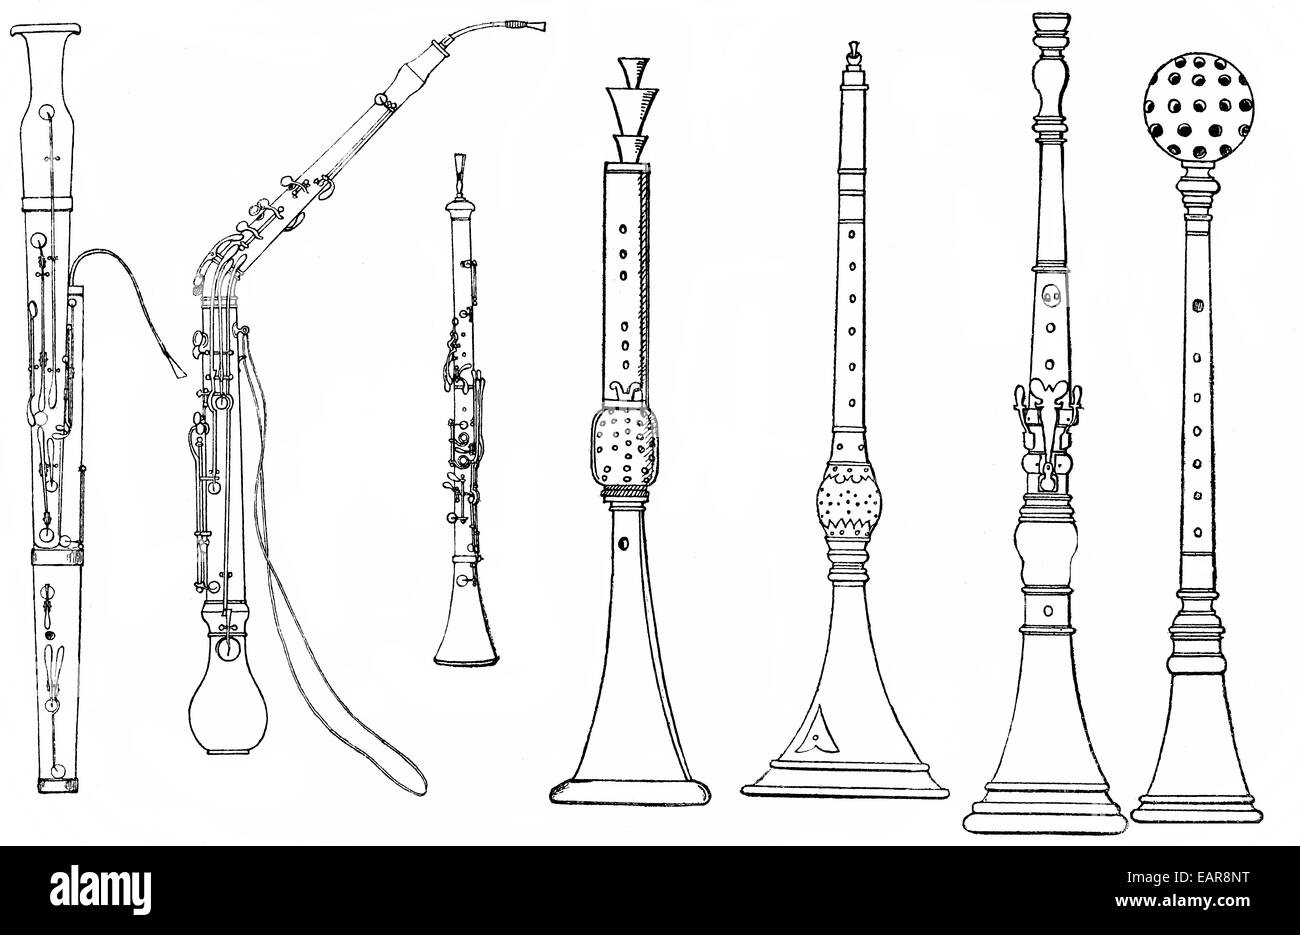 Shawm stock photos shawm stock images alamy various forms of ancient woodwind instruments shawm oboe bassoon english horn ccuart Choice Image